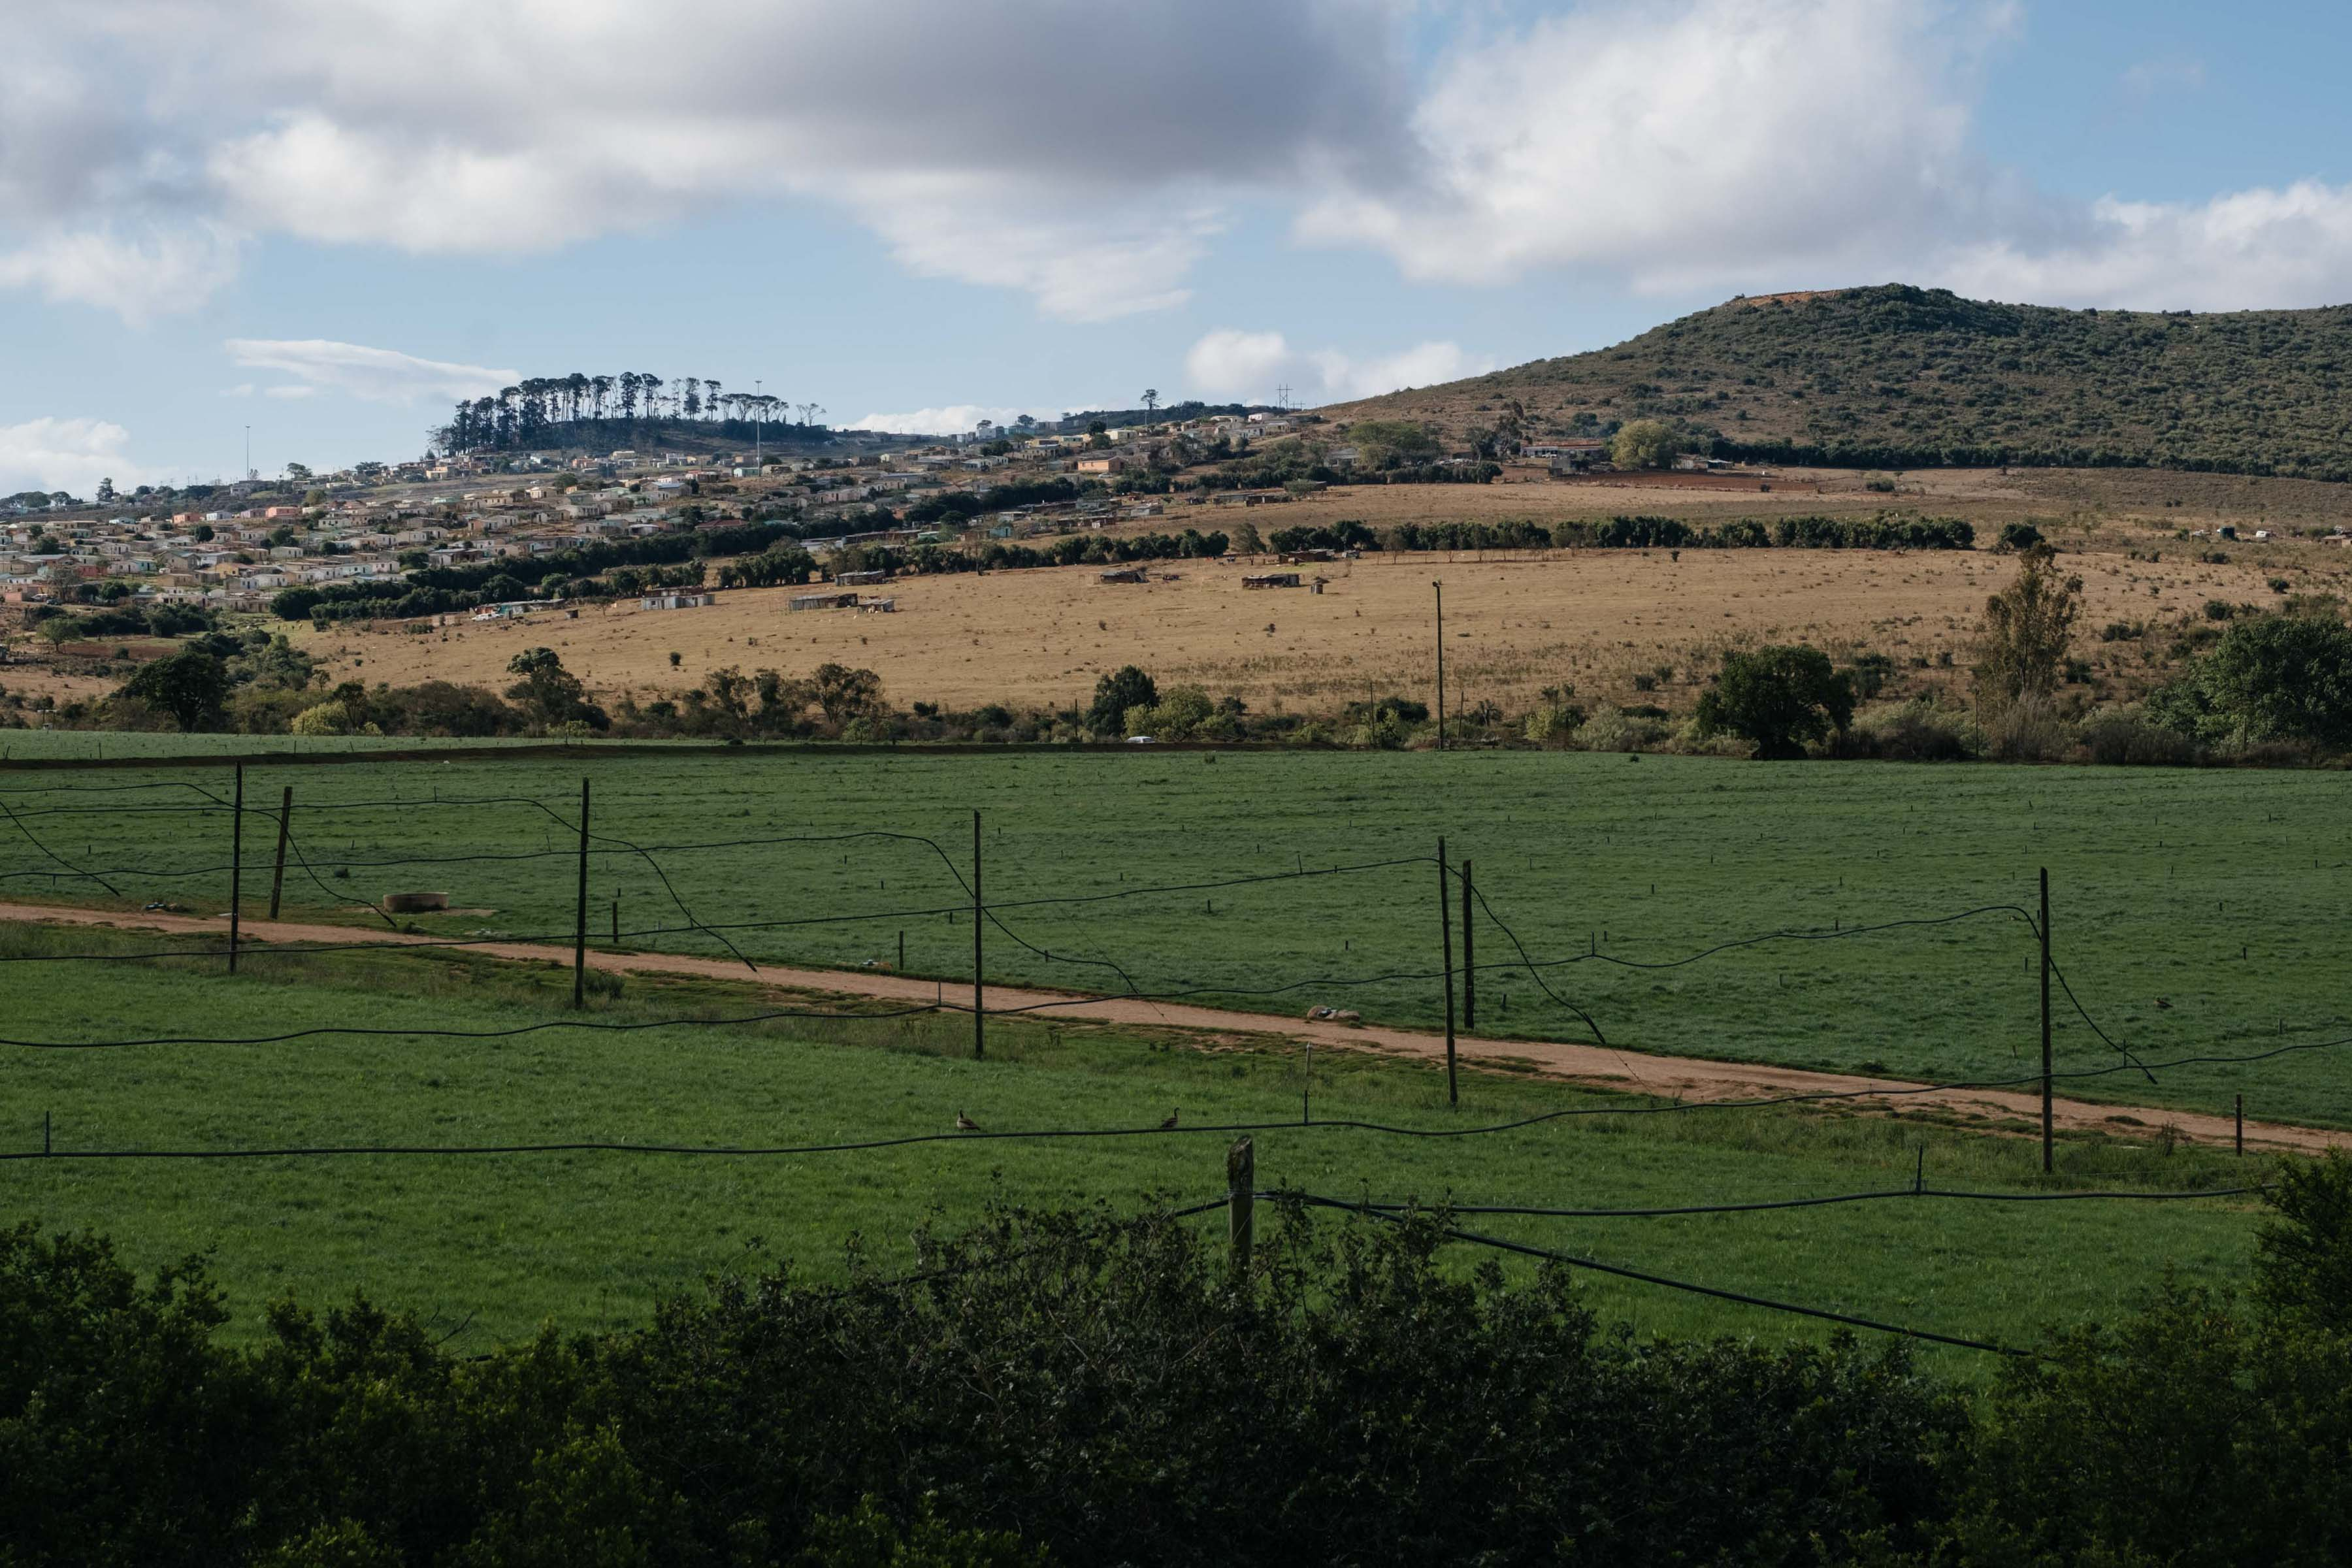 12 November 2019: The contrast between irrigated farmland on the outskirts of Makhanda and the commonage used by township residents for grazing is stark. Farmers have been better able to adapt by sinking boreholes and buying fodder for livestock.